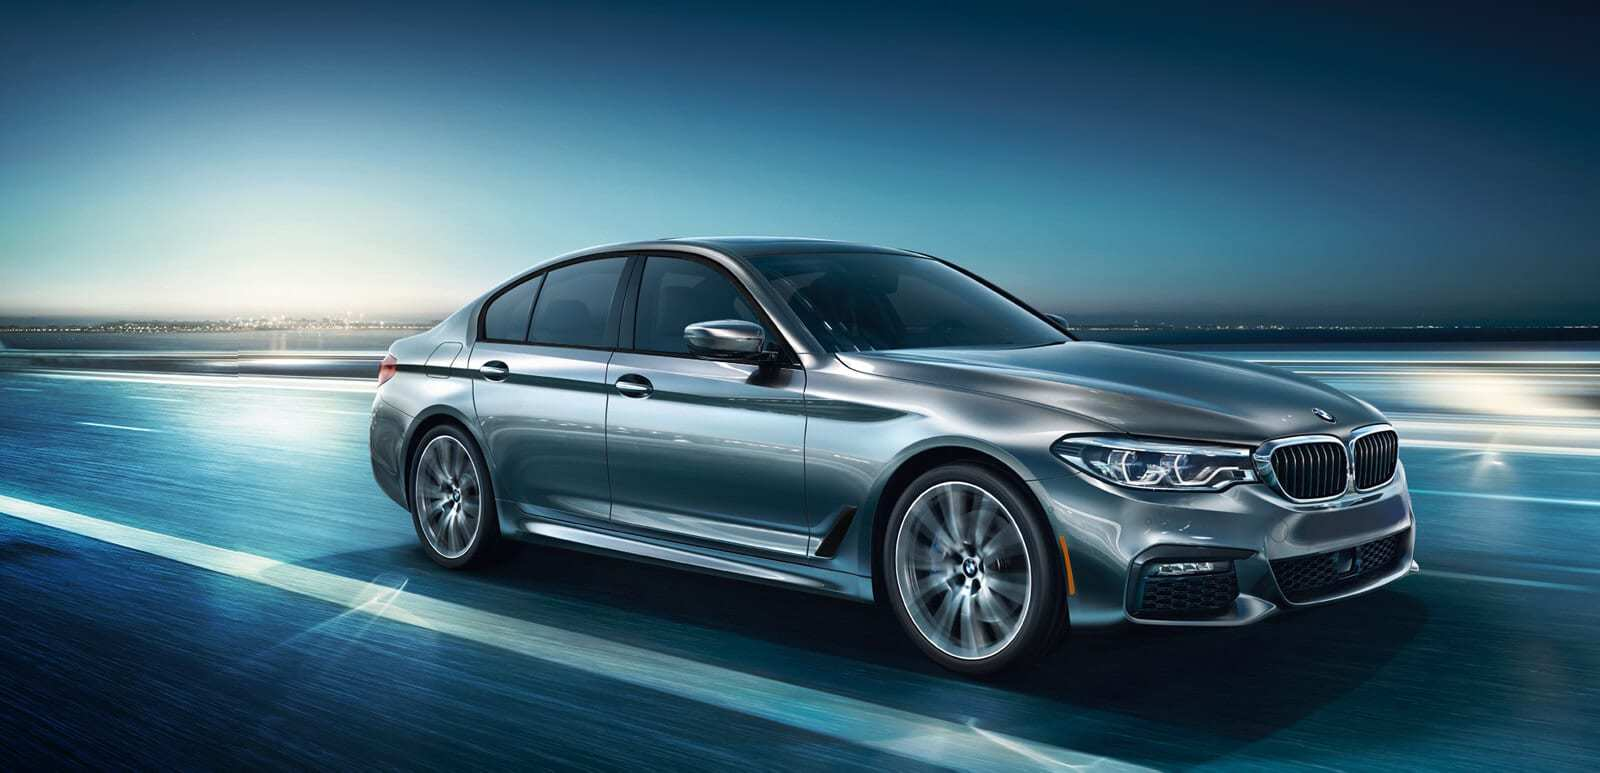 54 All New 2020 BMW 5 Series Pricing